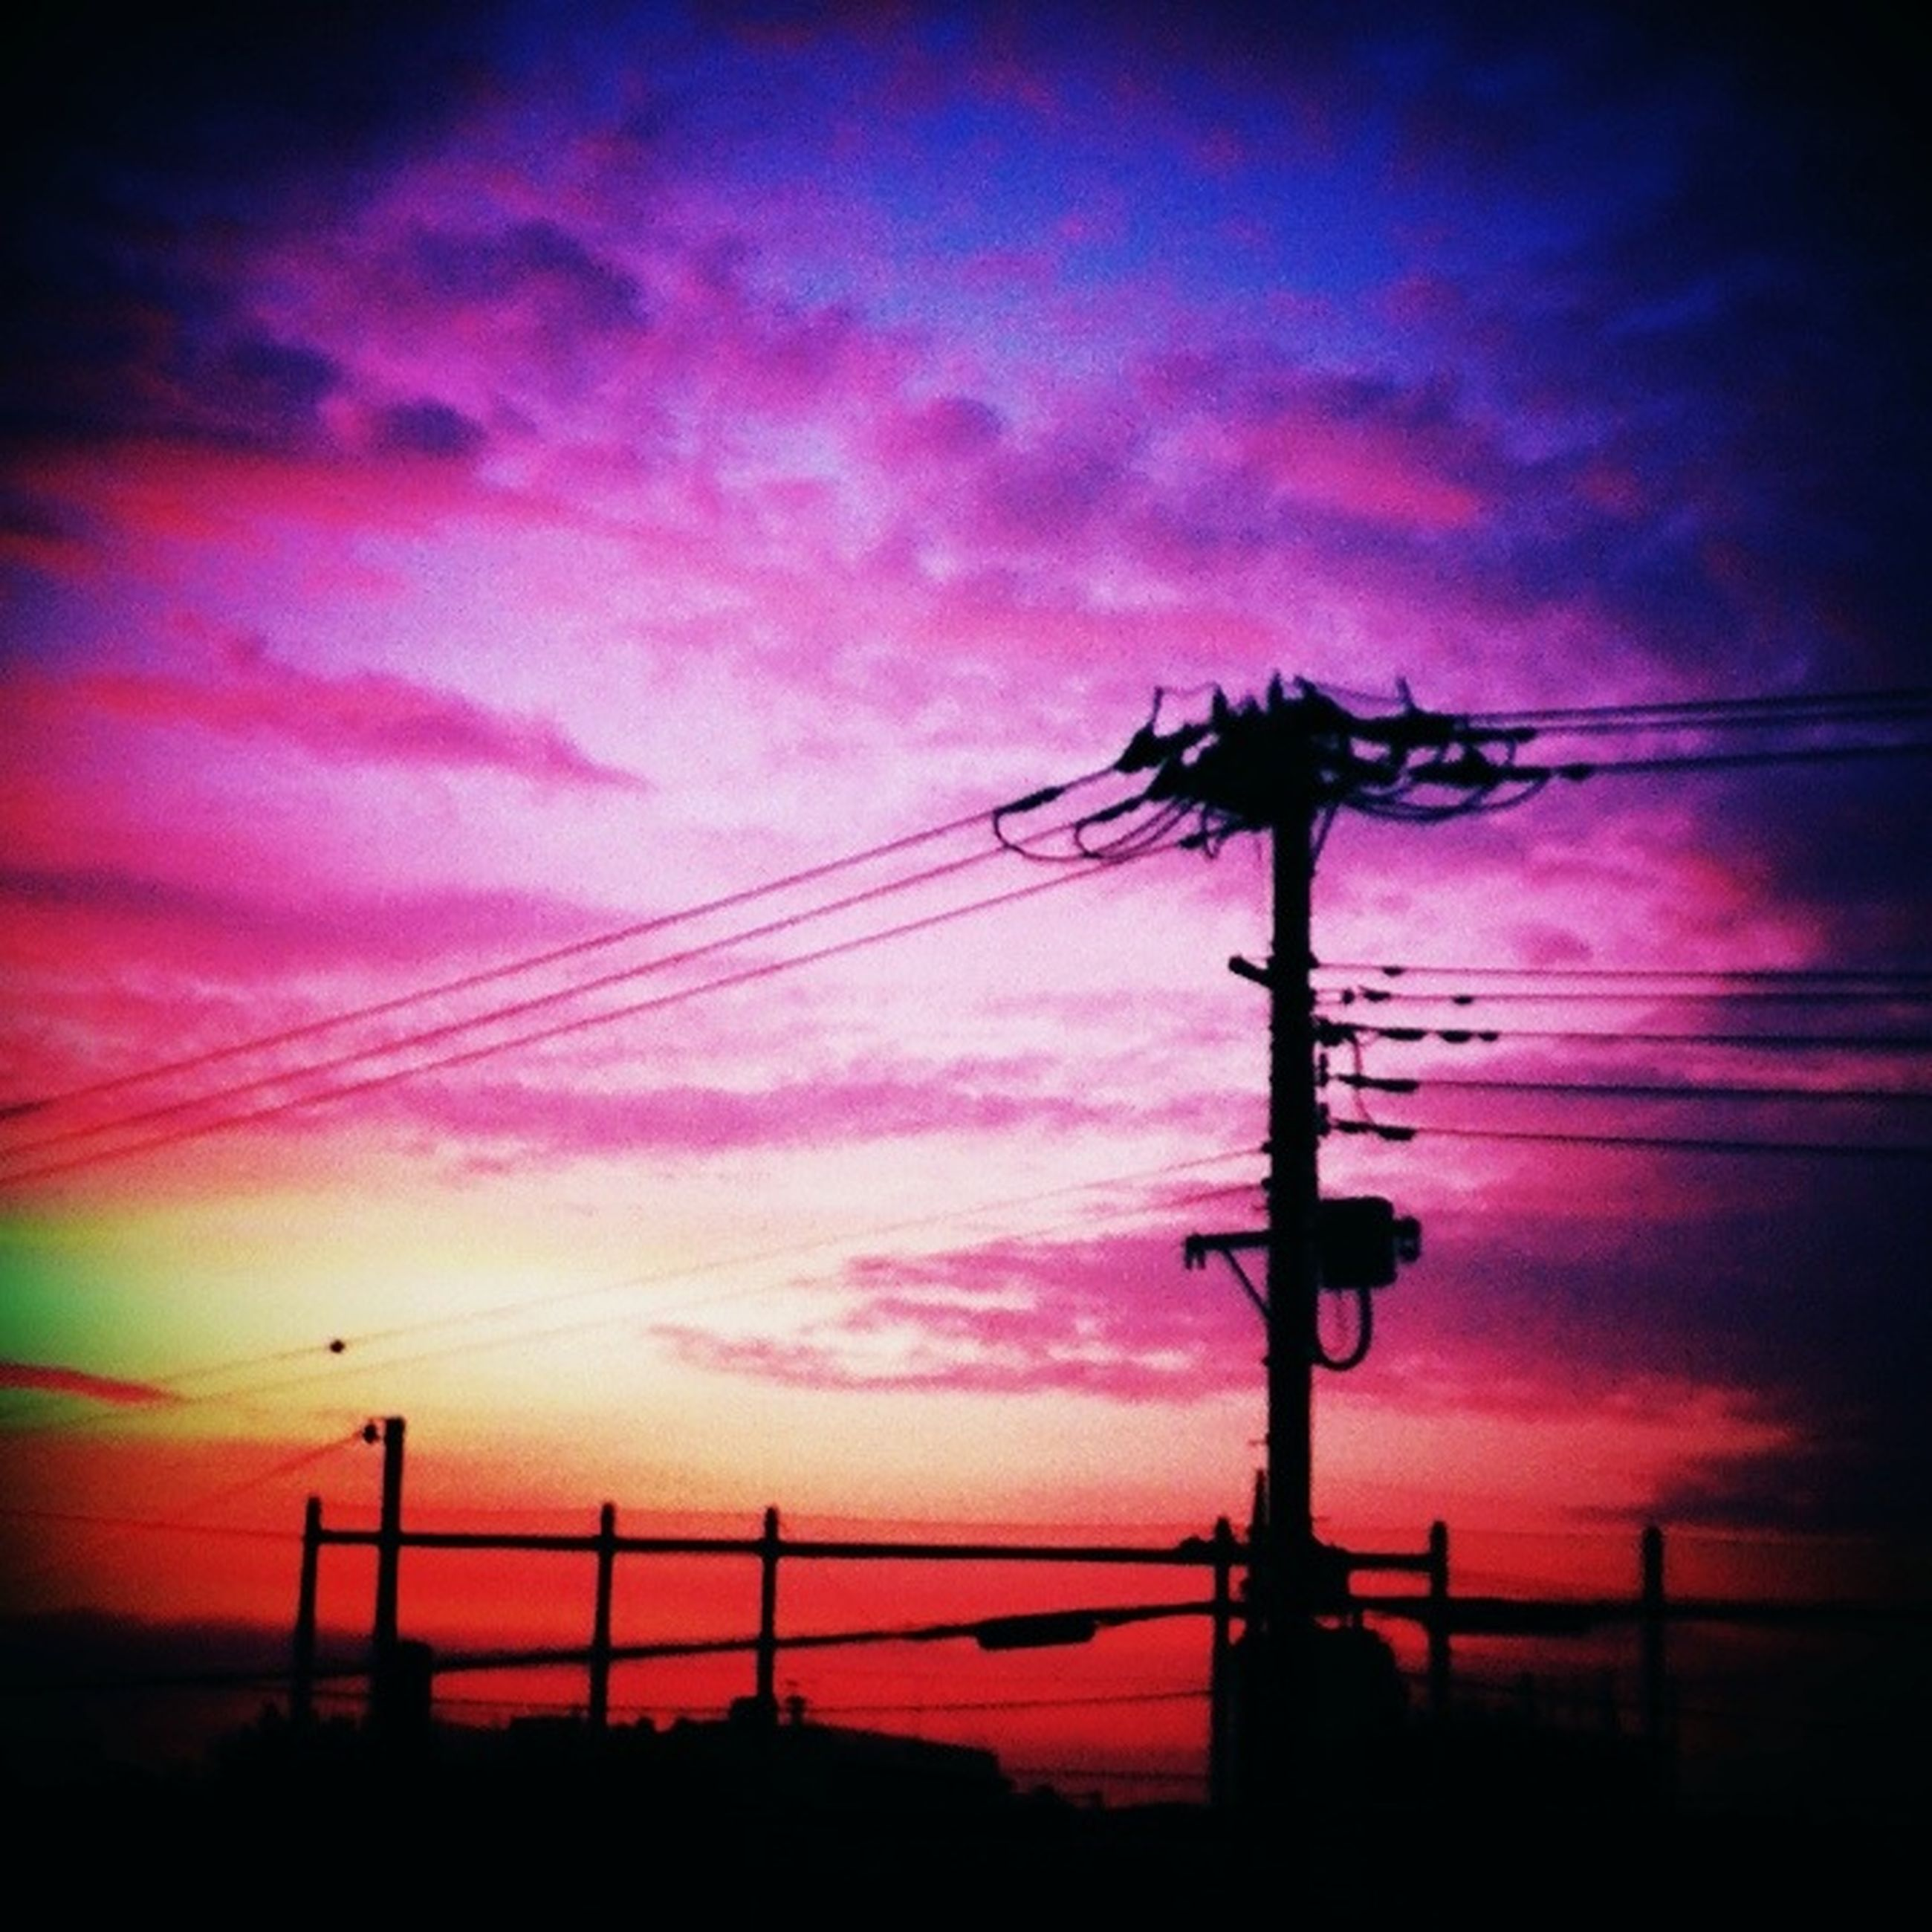 sunset, sky, power line, silhouette, low angle view, electricity pylon, power supply, connection, electricity, cloud - sky, cable, fuel and power generation, technology, beauty in nature, orange color, cloudy, nature, tranquility, dusk, cloud